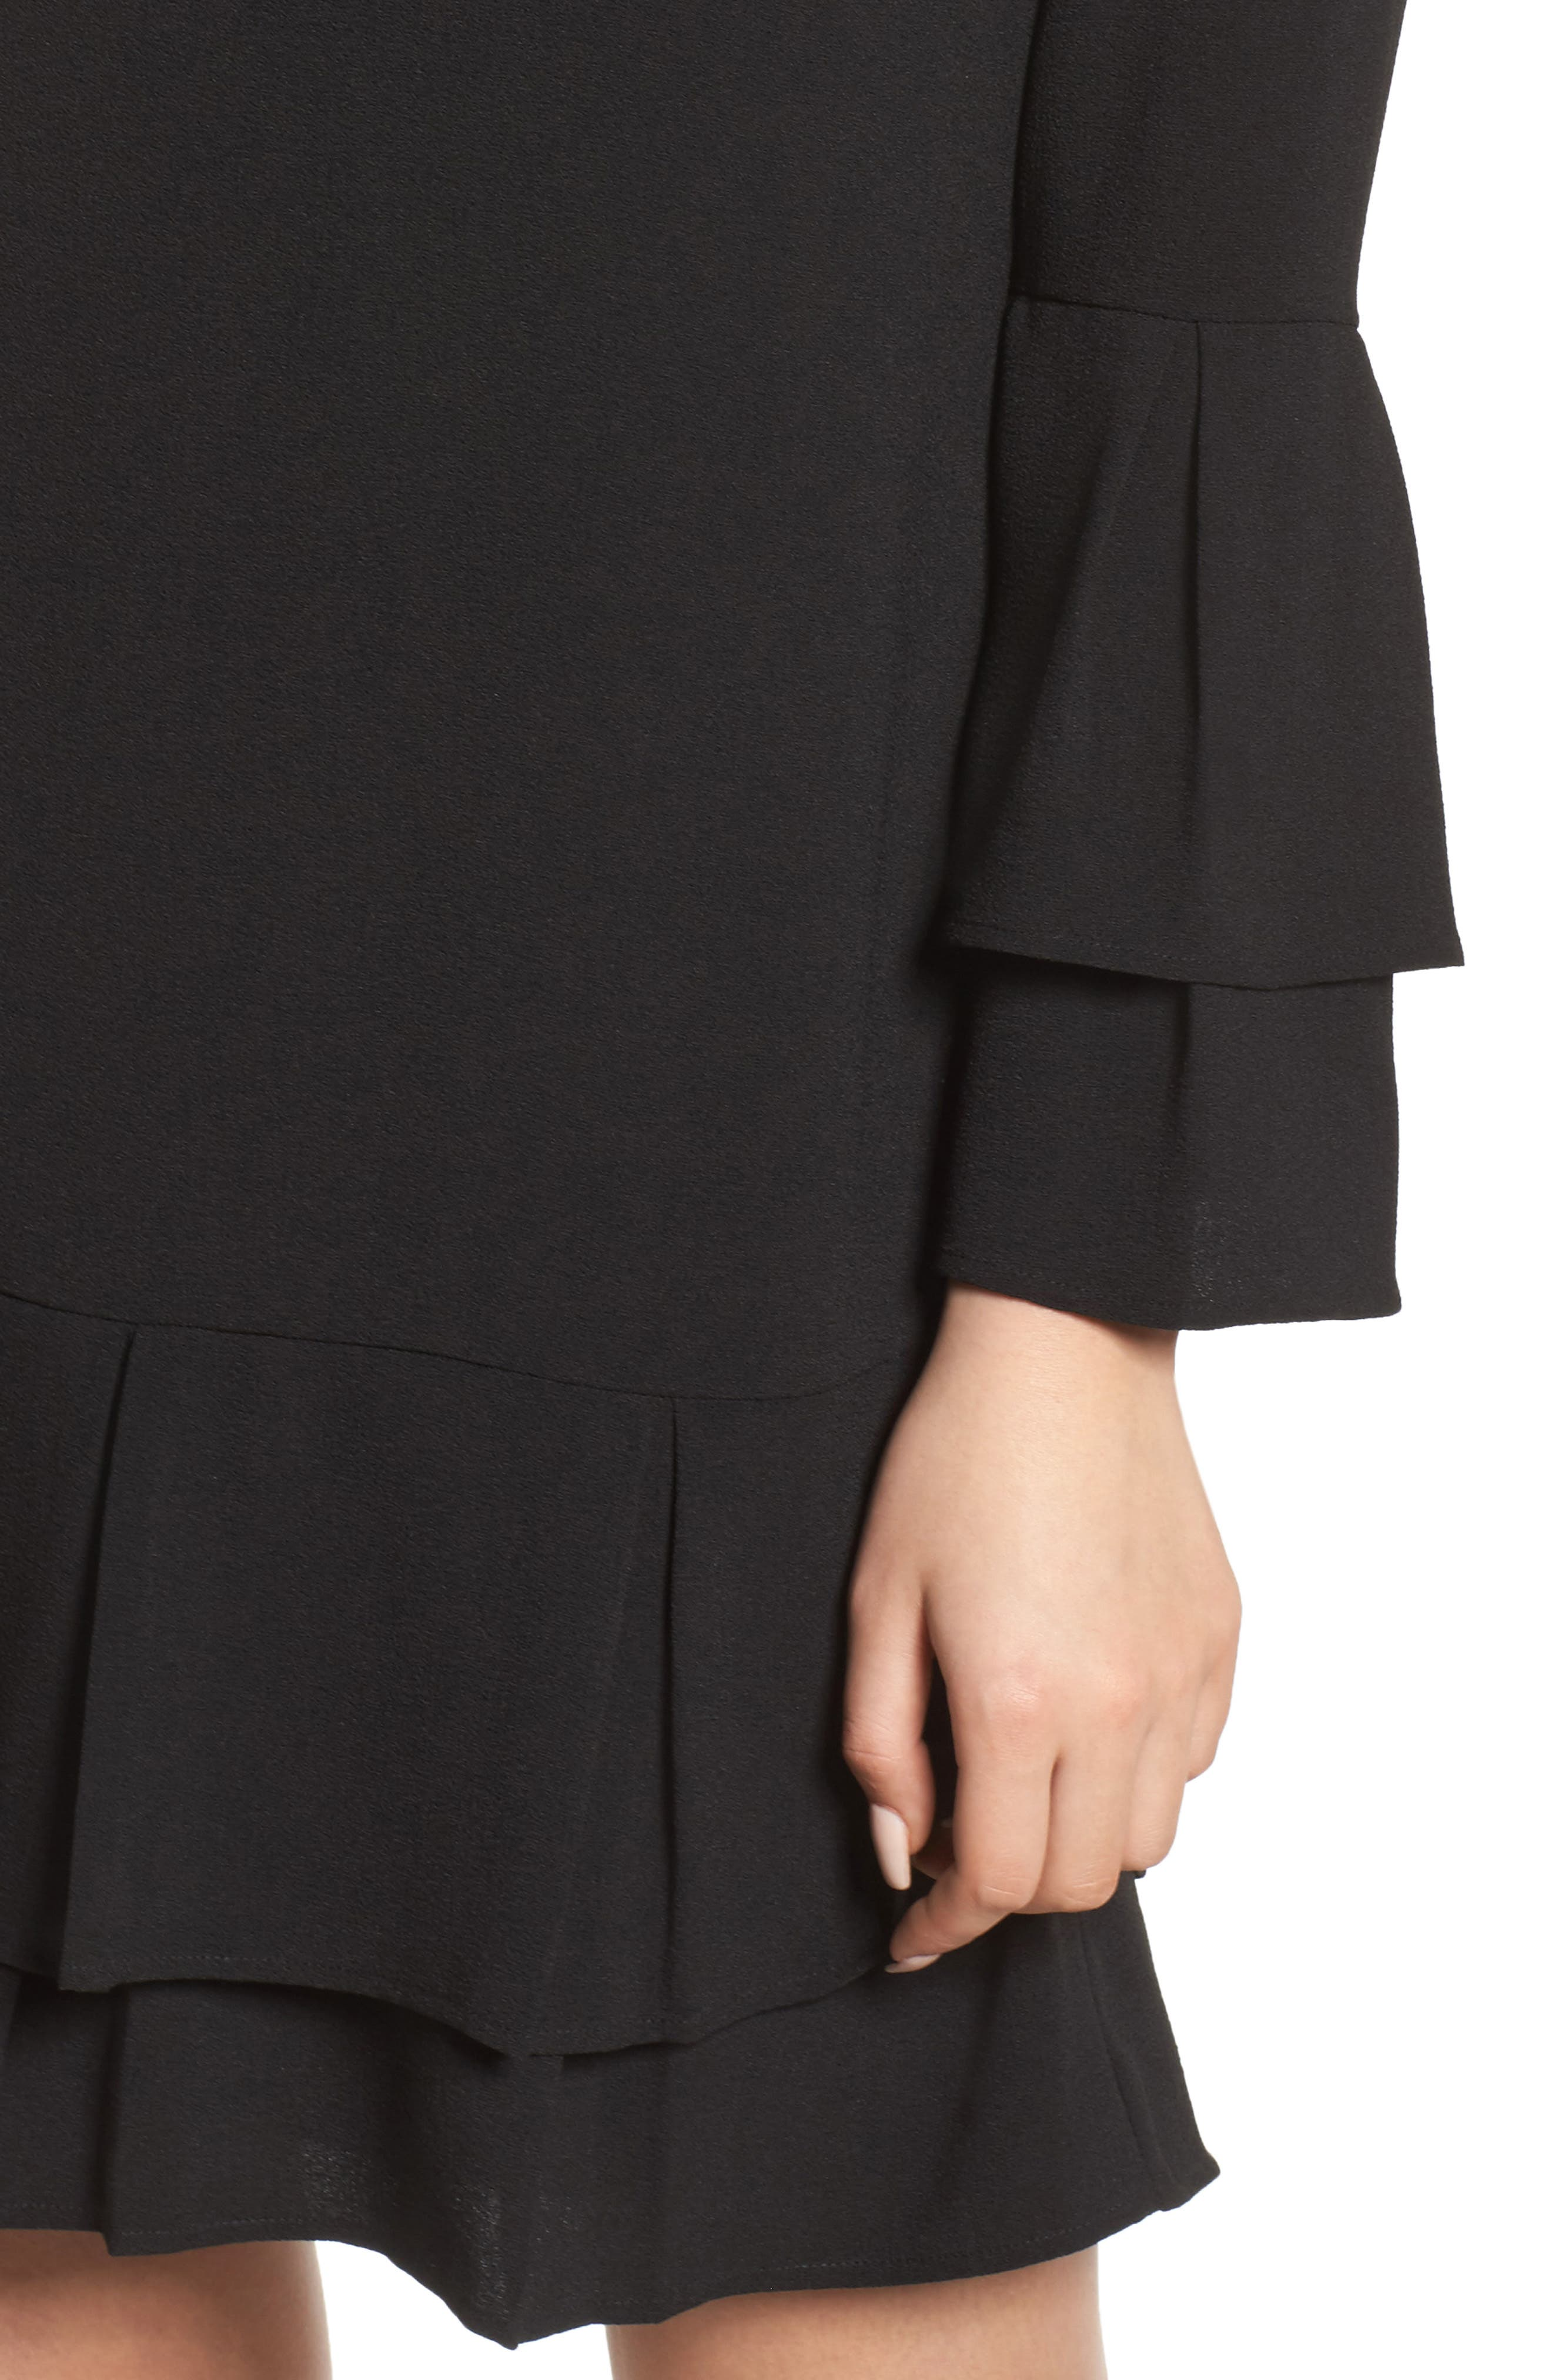 Tiered Sleeve Shift Dress,                             Alternate thumbnail 4, color,                             Black